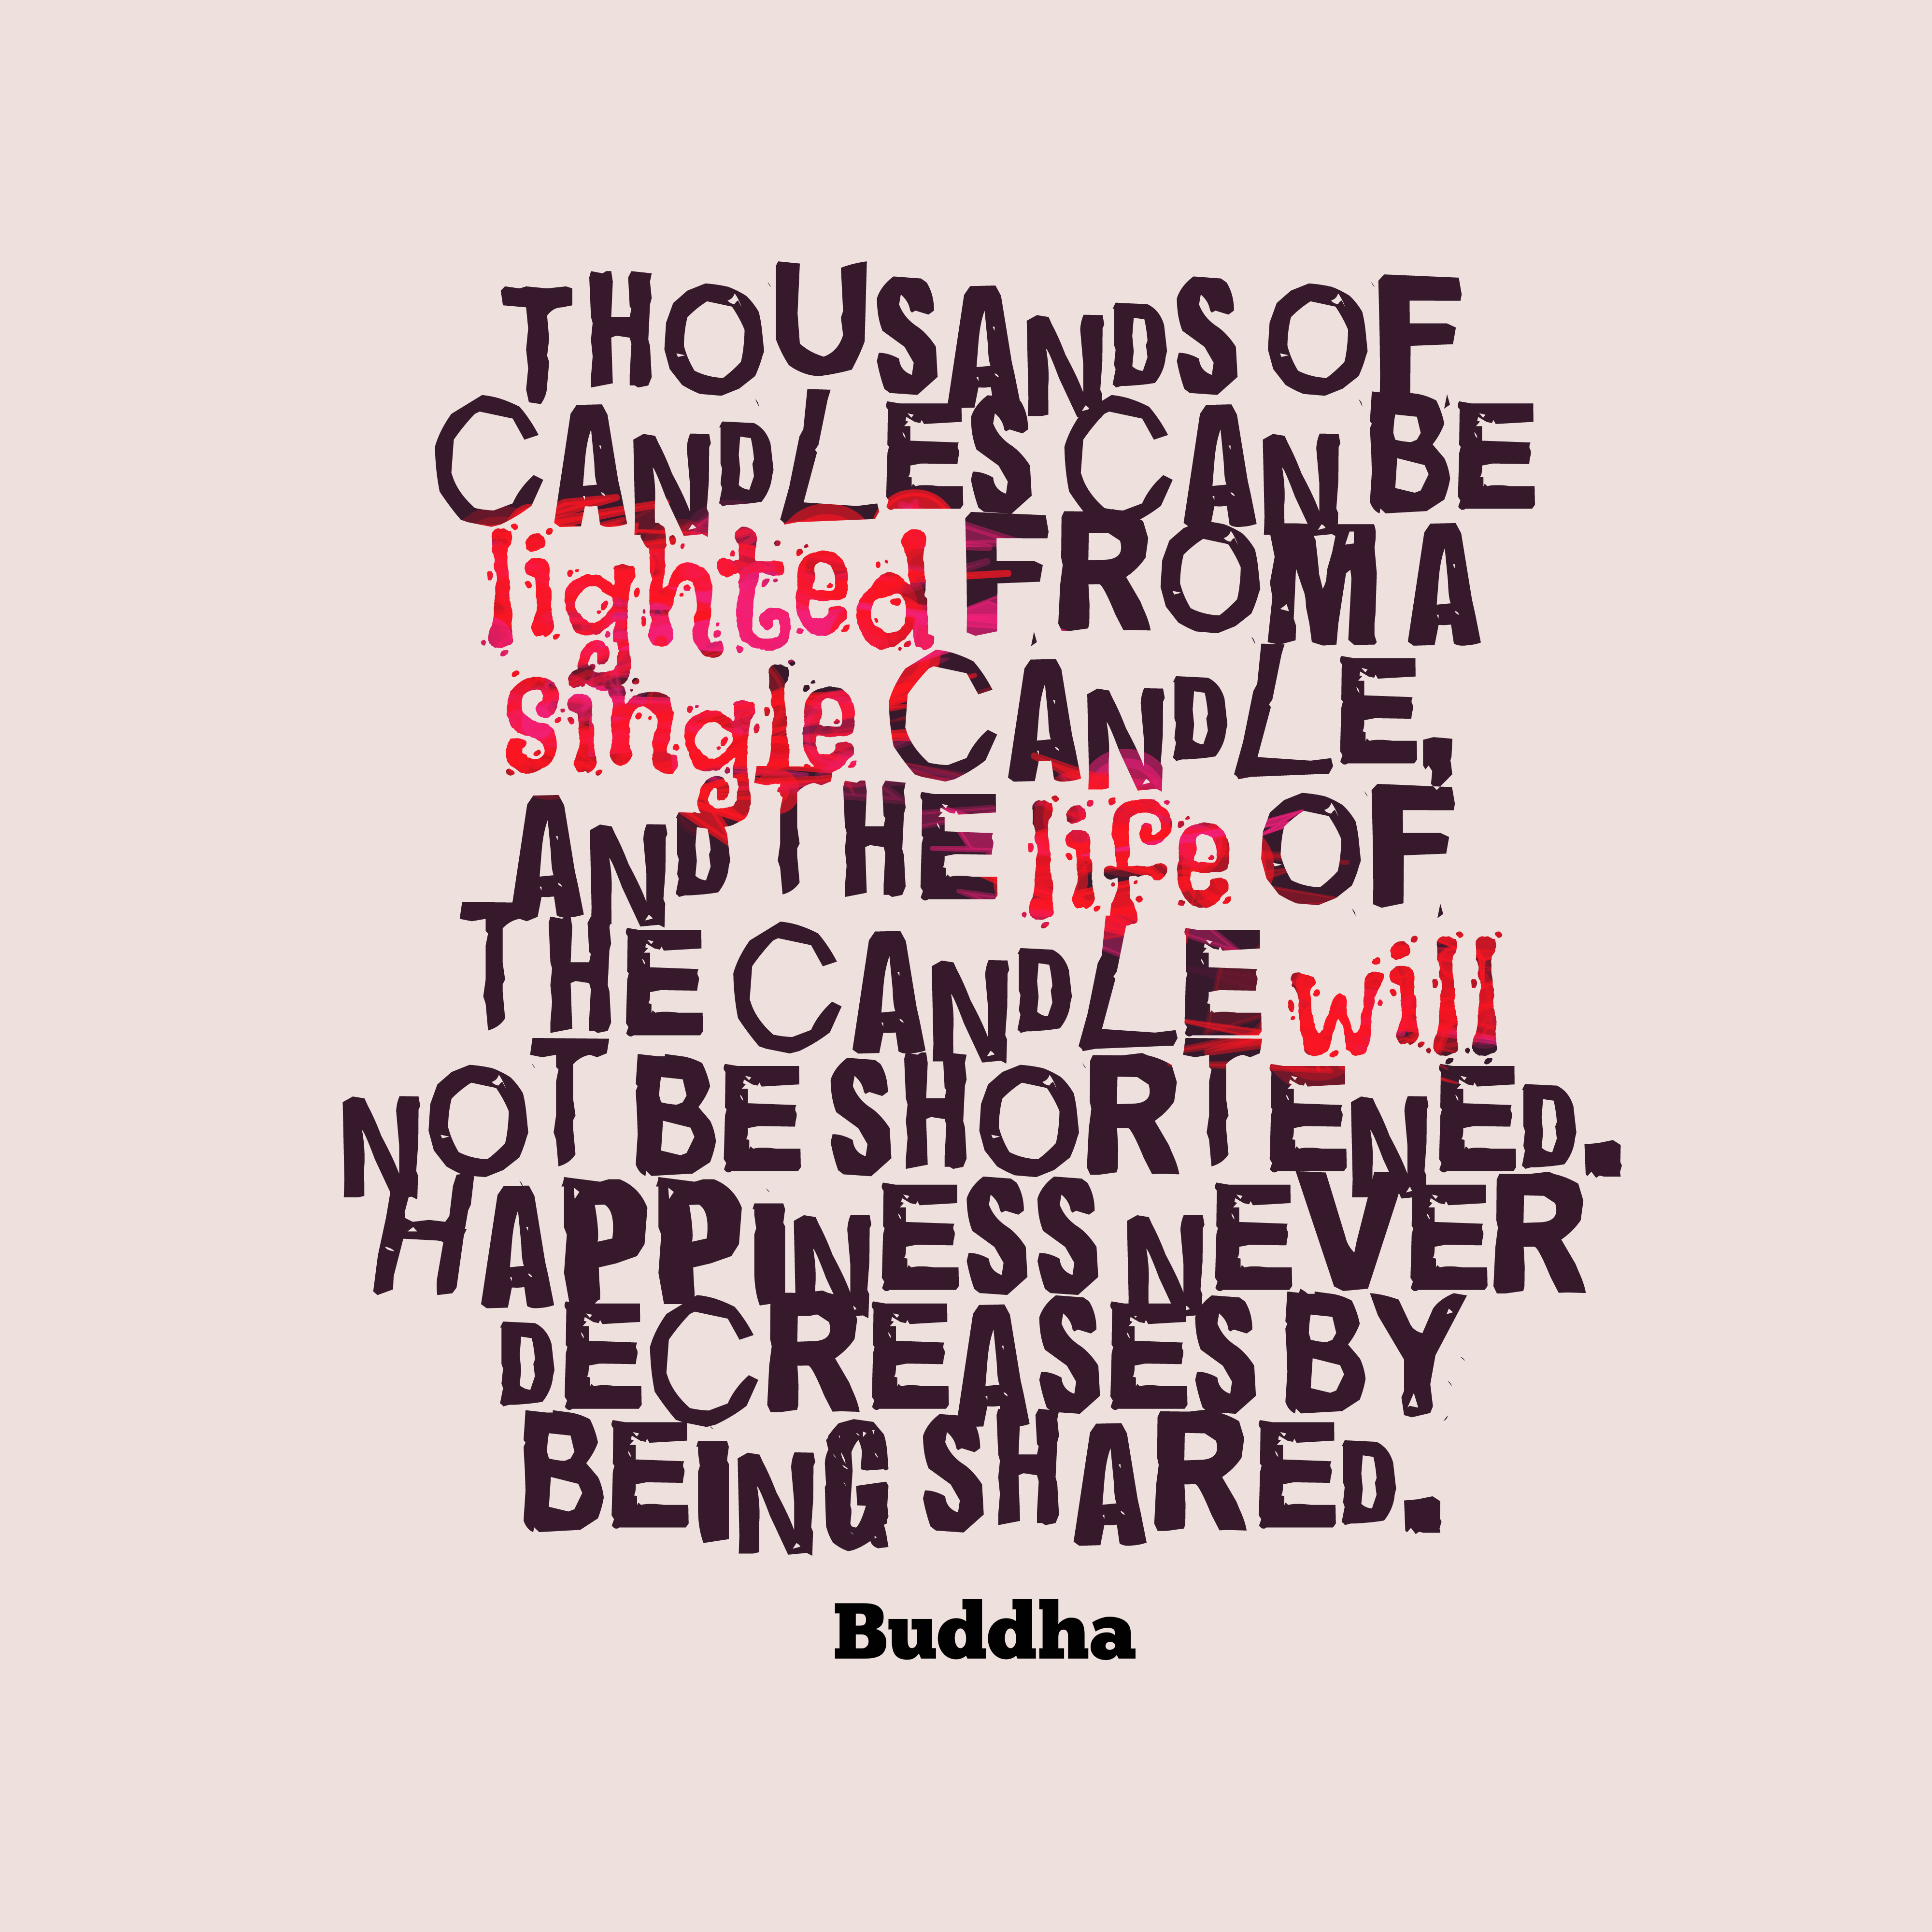 Buddha quote about life